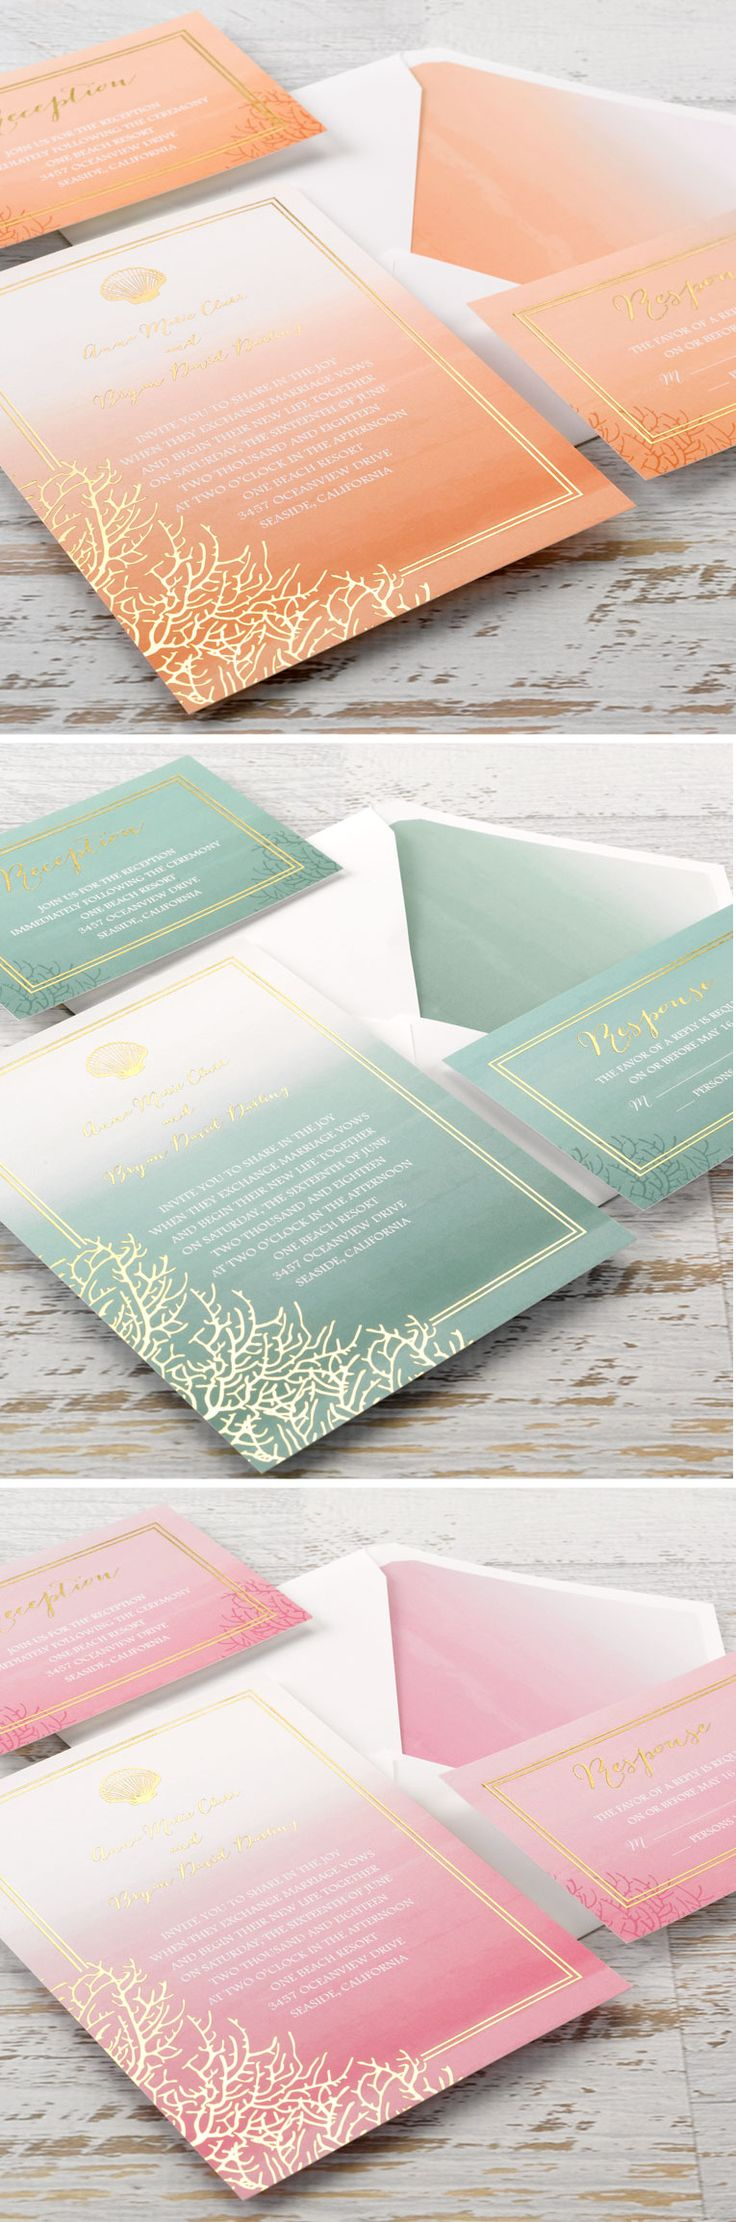 Foil-stamped beach theme wedding invitations from Colin Cowie. #coral #seashell #destinationwedding